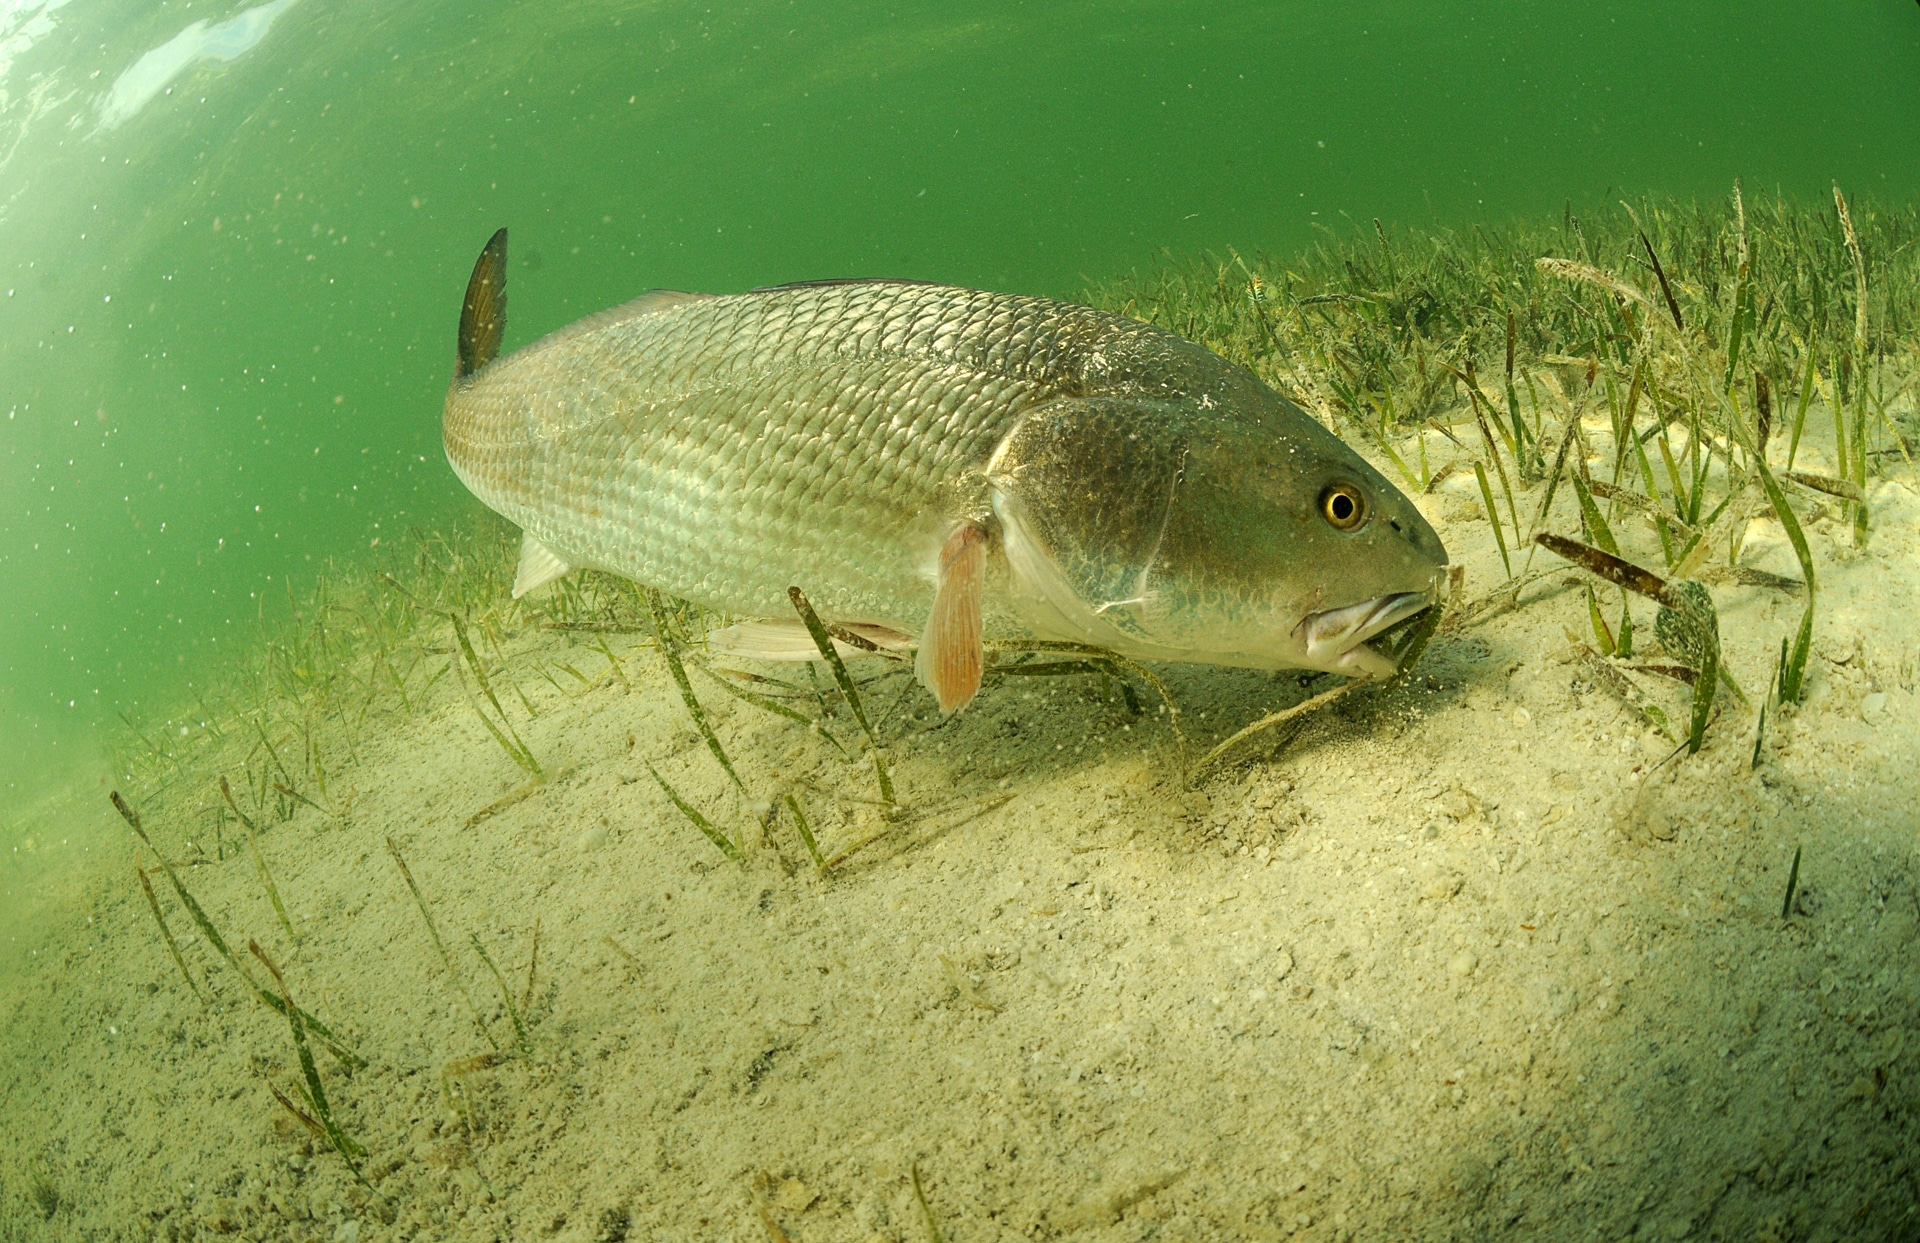 redfish in ocean